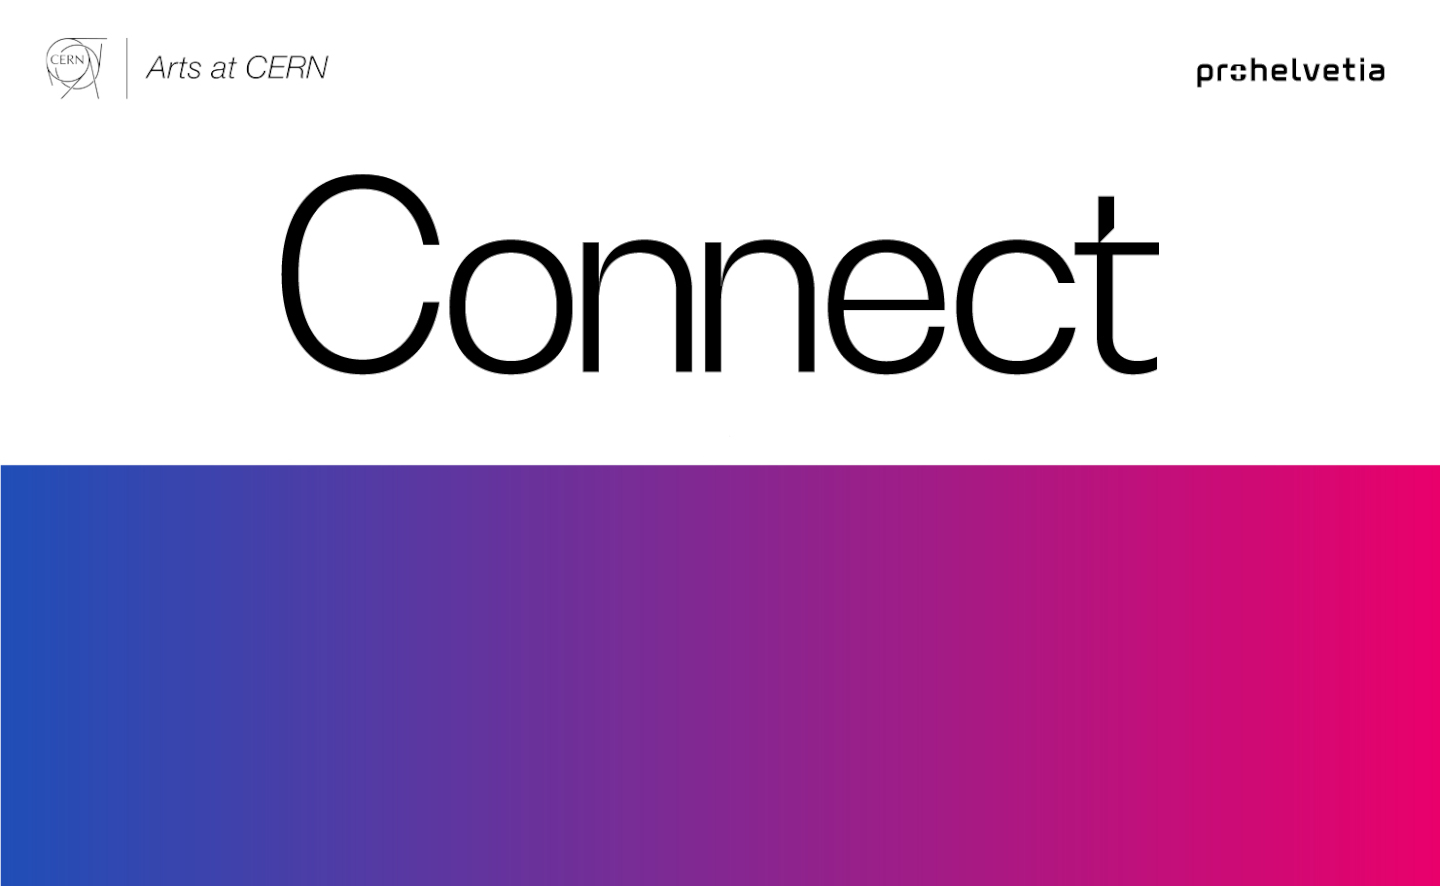 """Arts at CERN and Pro Helvetia extend their partnership with the launch of """"Connect"""""""